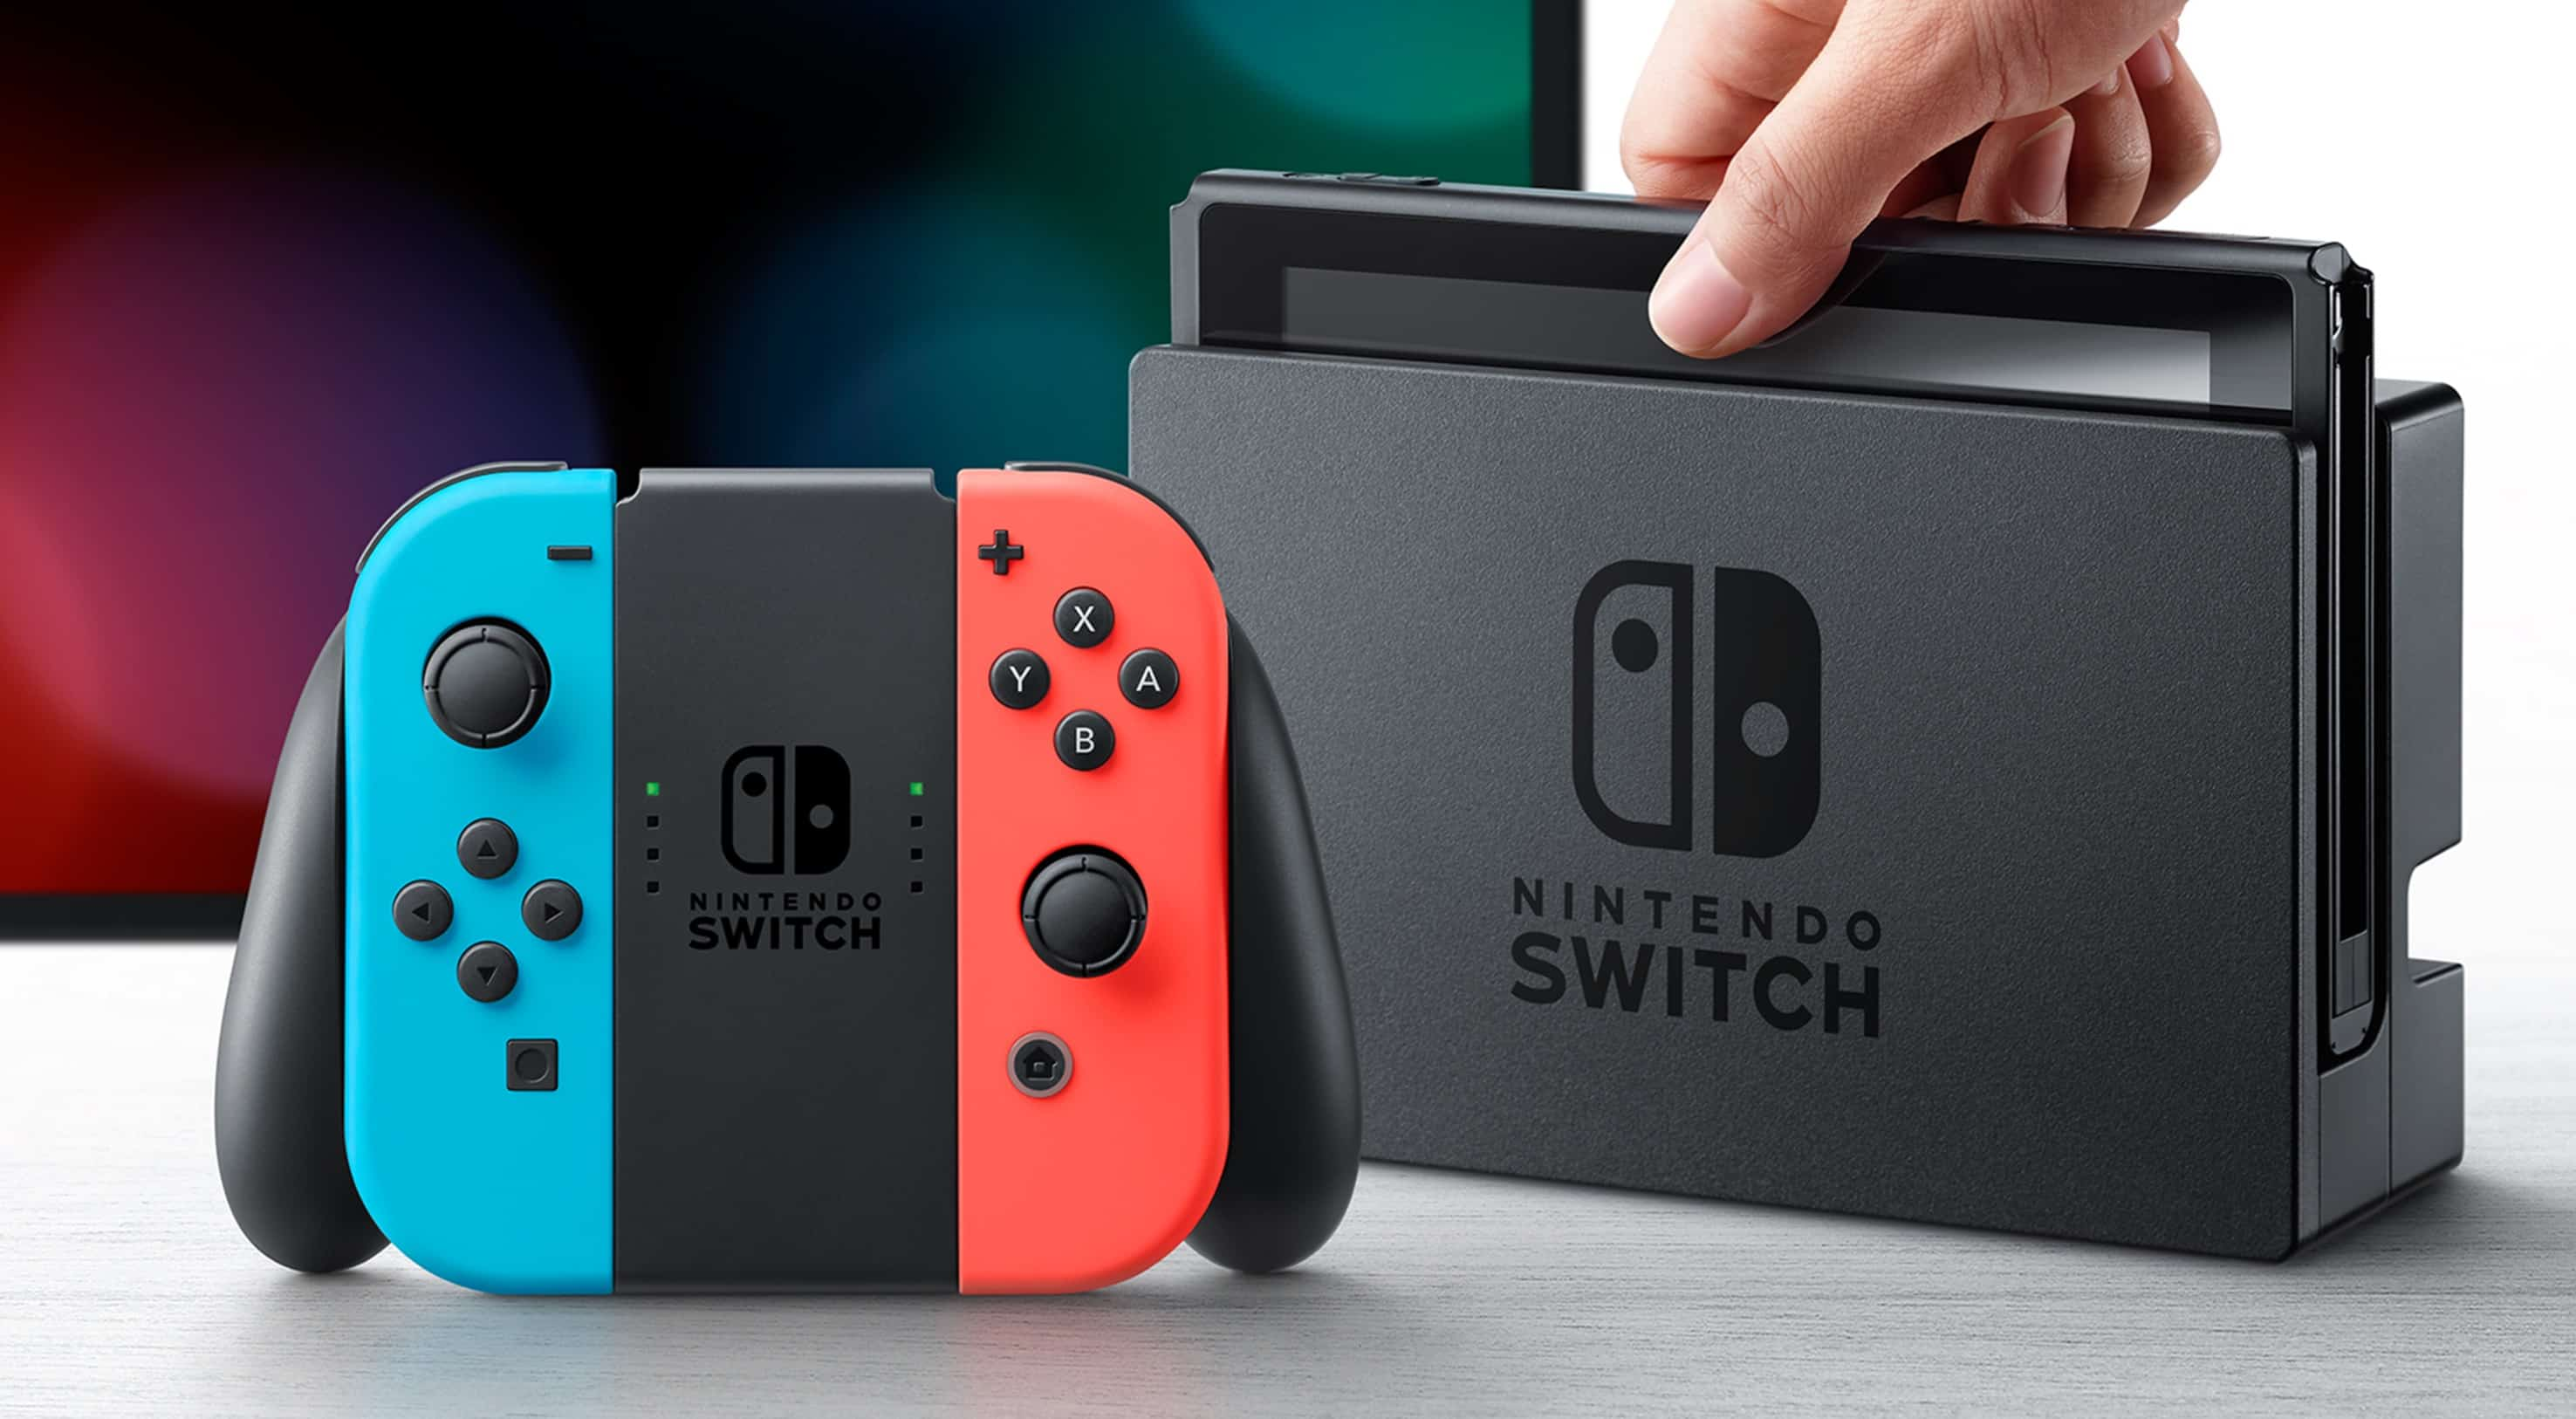 nintendo switch o l 39 acheter au meilleur prix. Black Bedroom Furniture Sets. Home Design Ideas